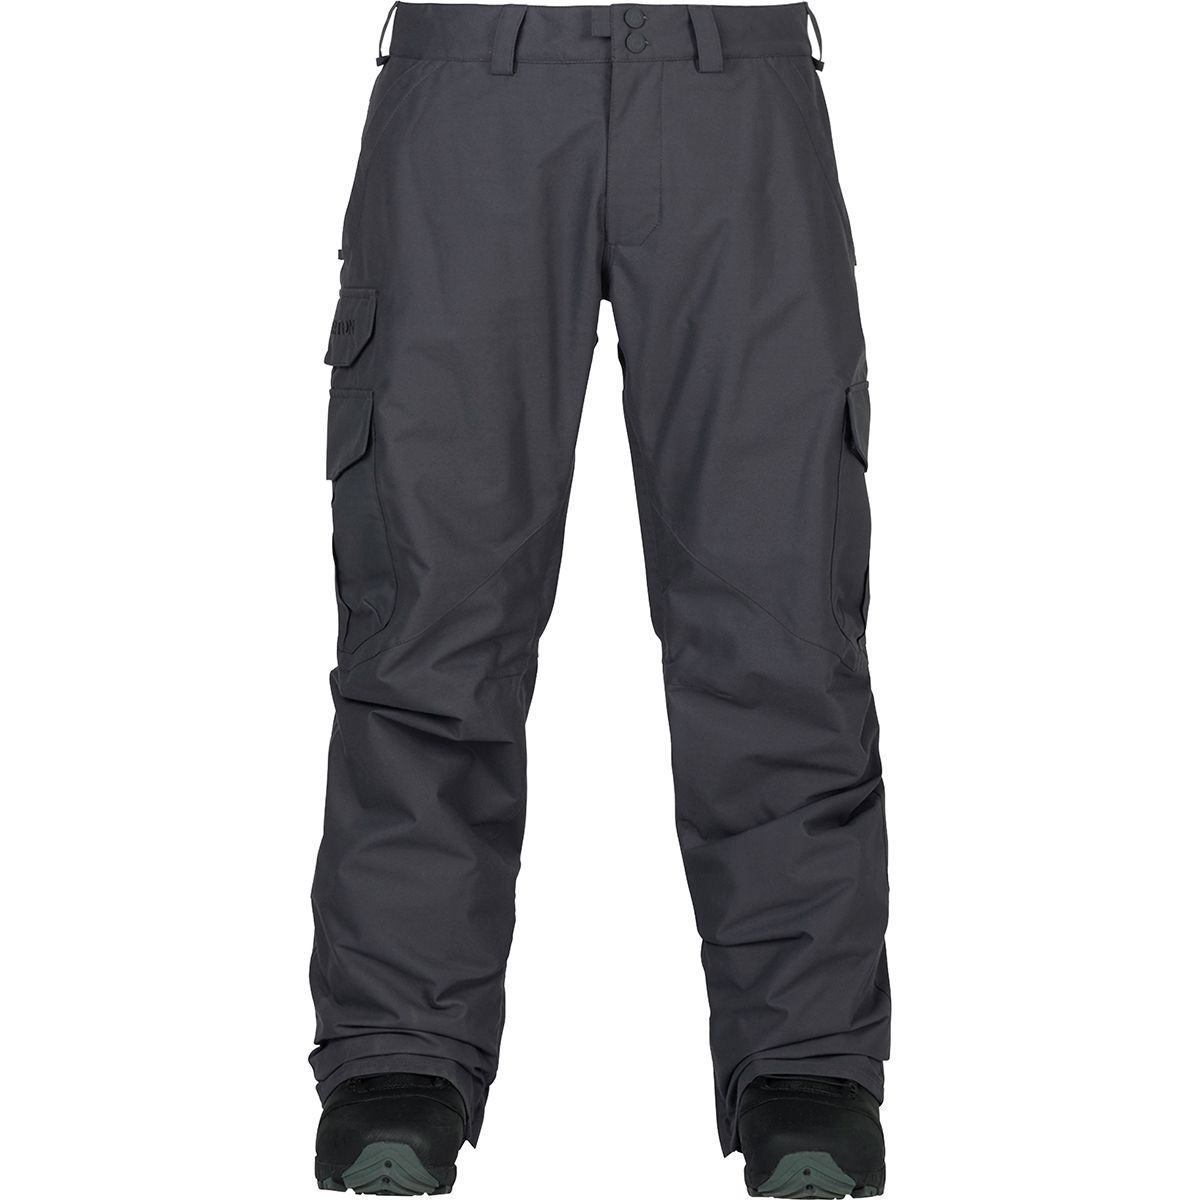 92cb909587e7 The 9 Best Snowboard Pants of 2019